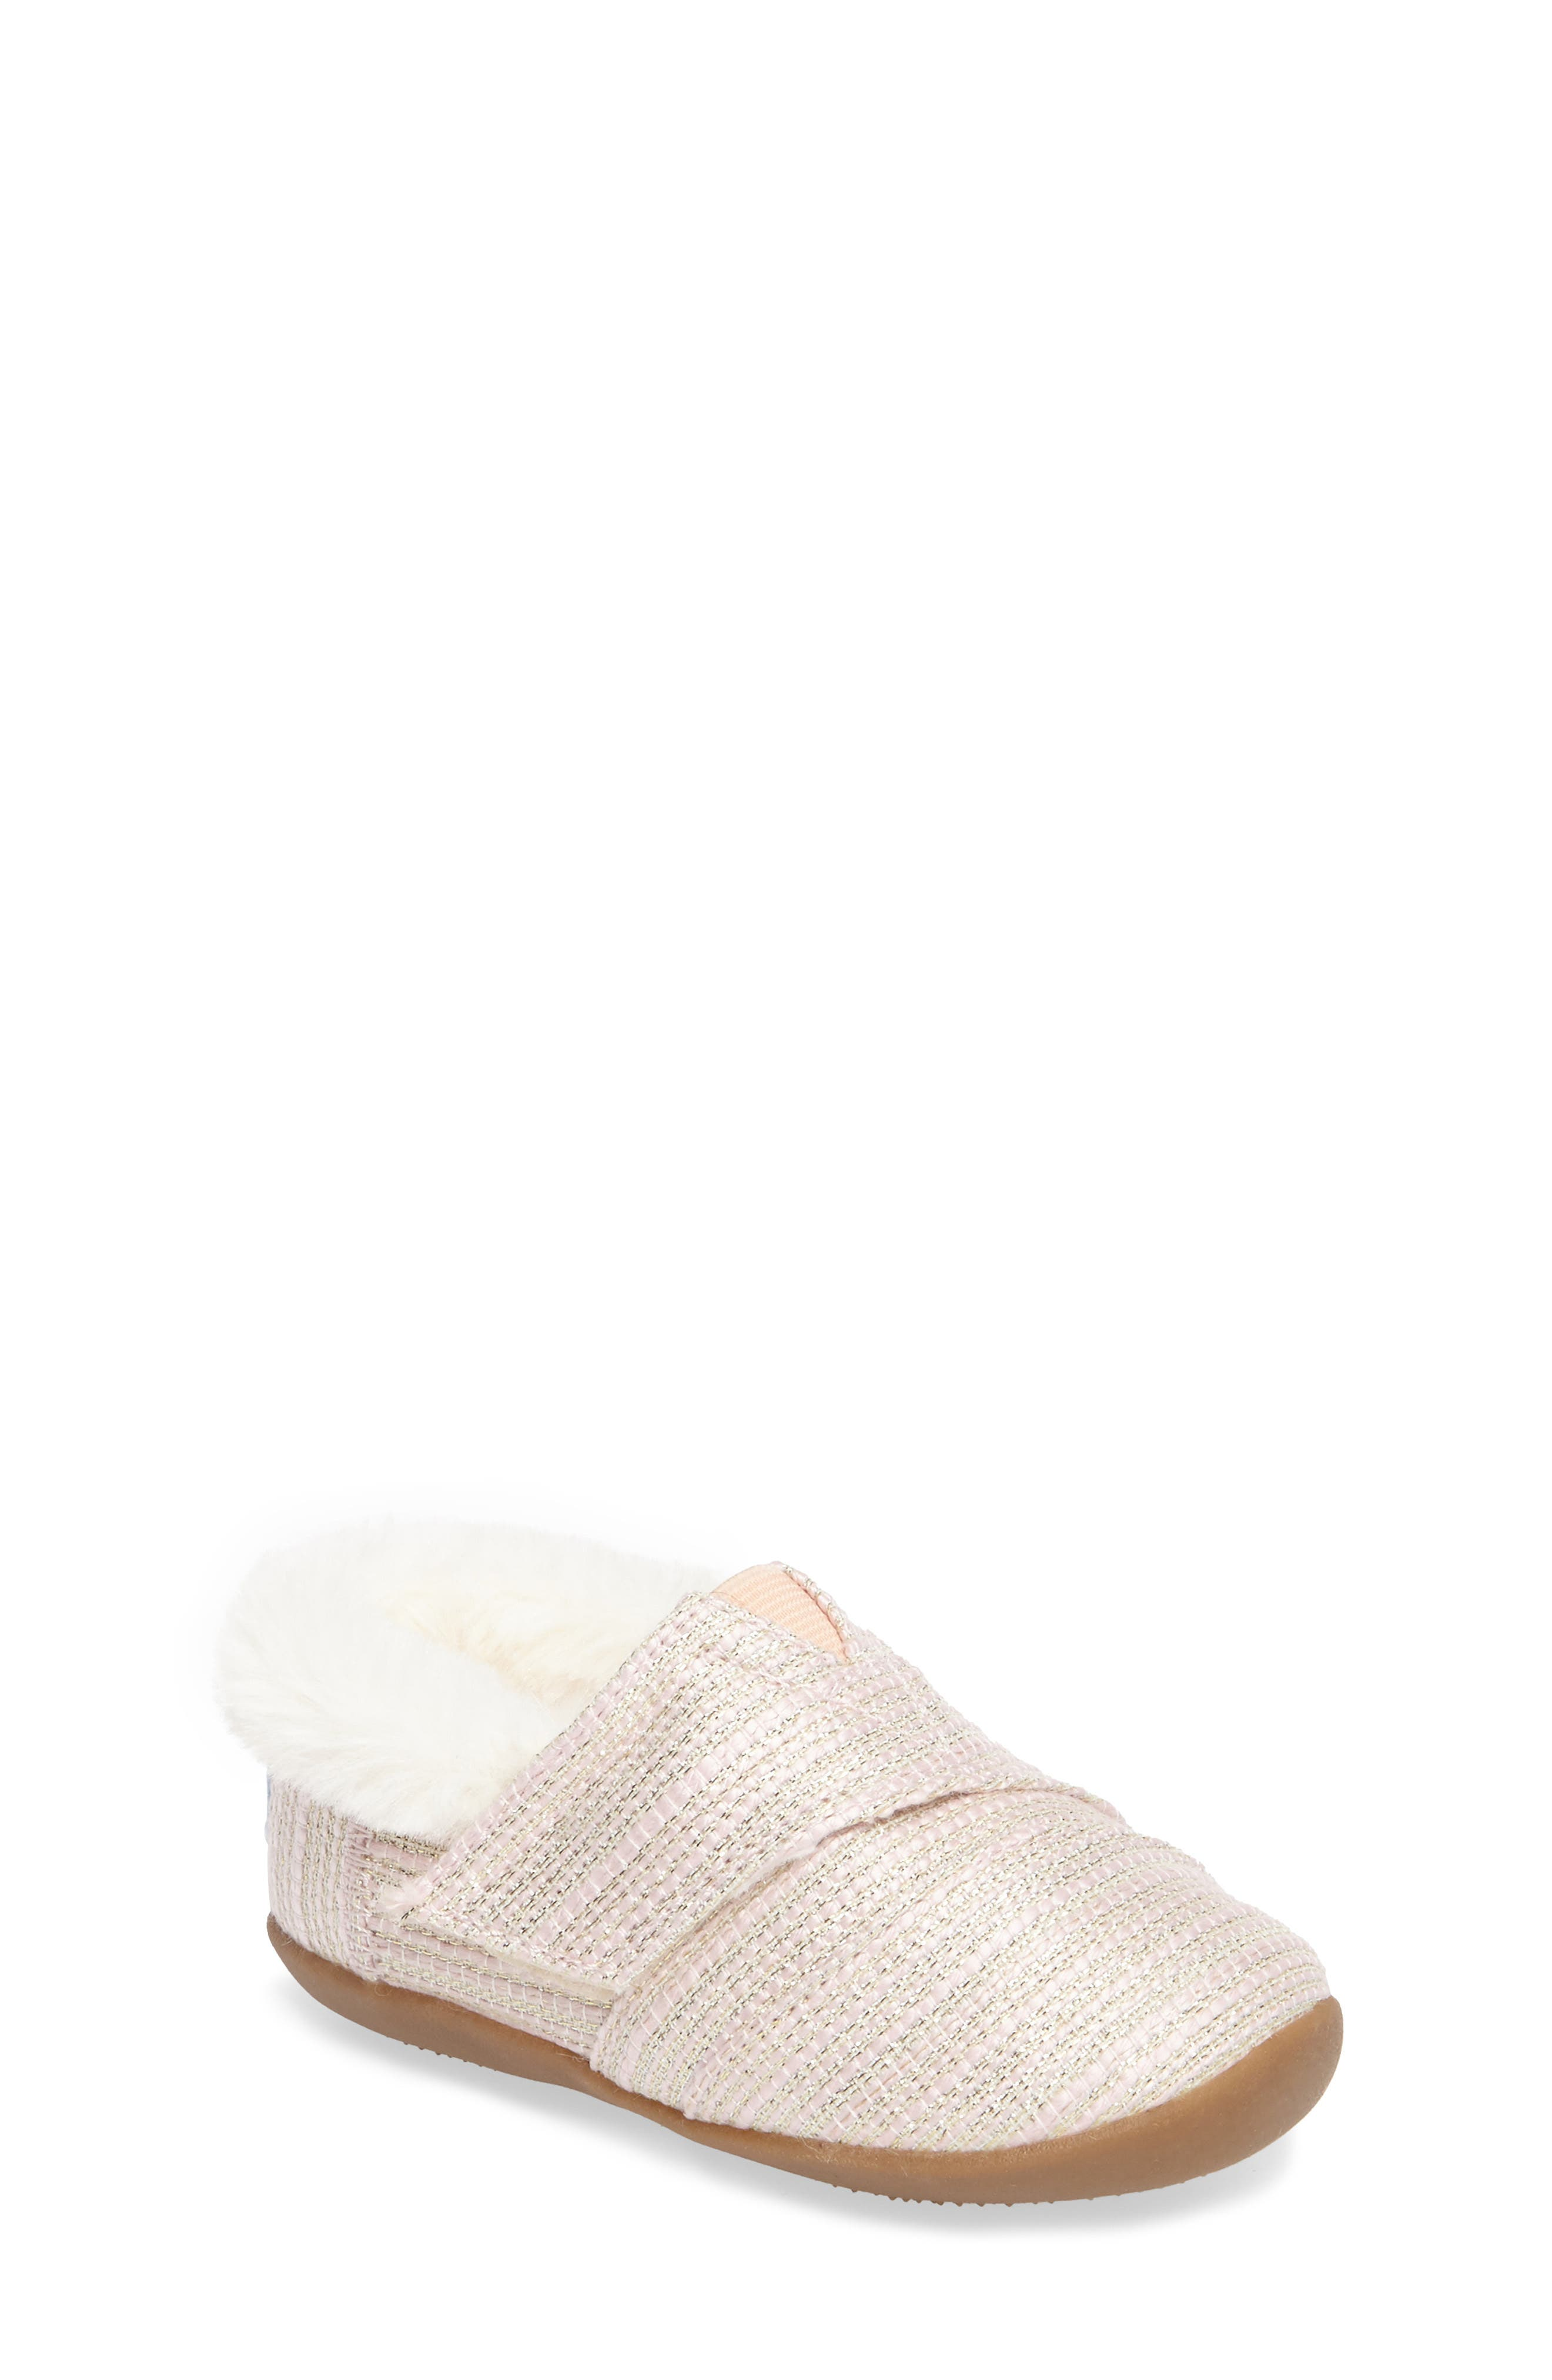 Alternate Image 1 Selected - TOMS Tiny Faux Fur Metallic Slipper (Baby, Walker & Toddler)